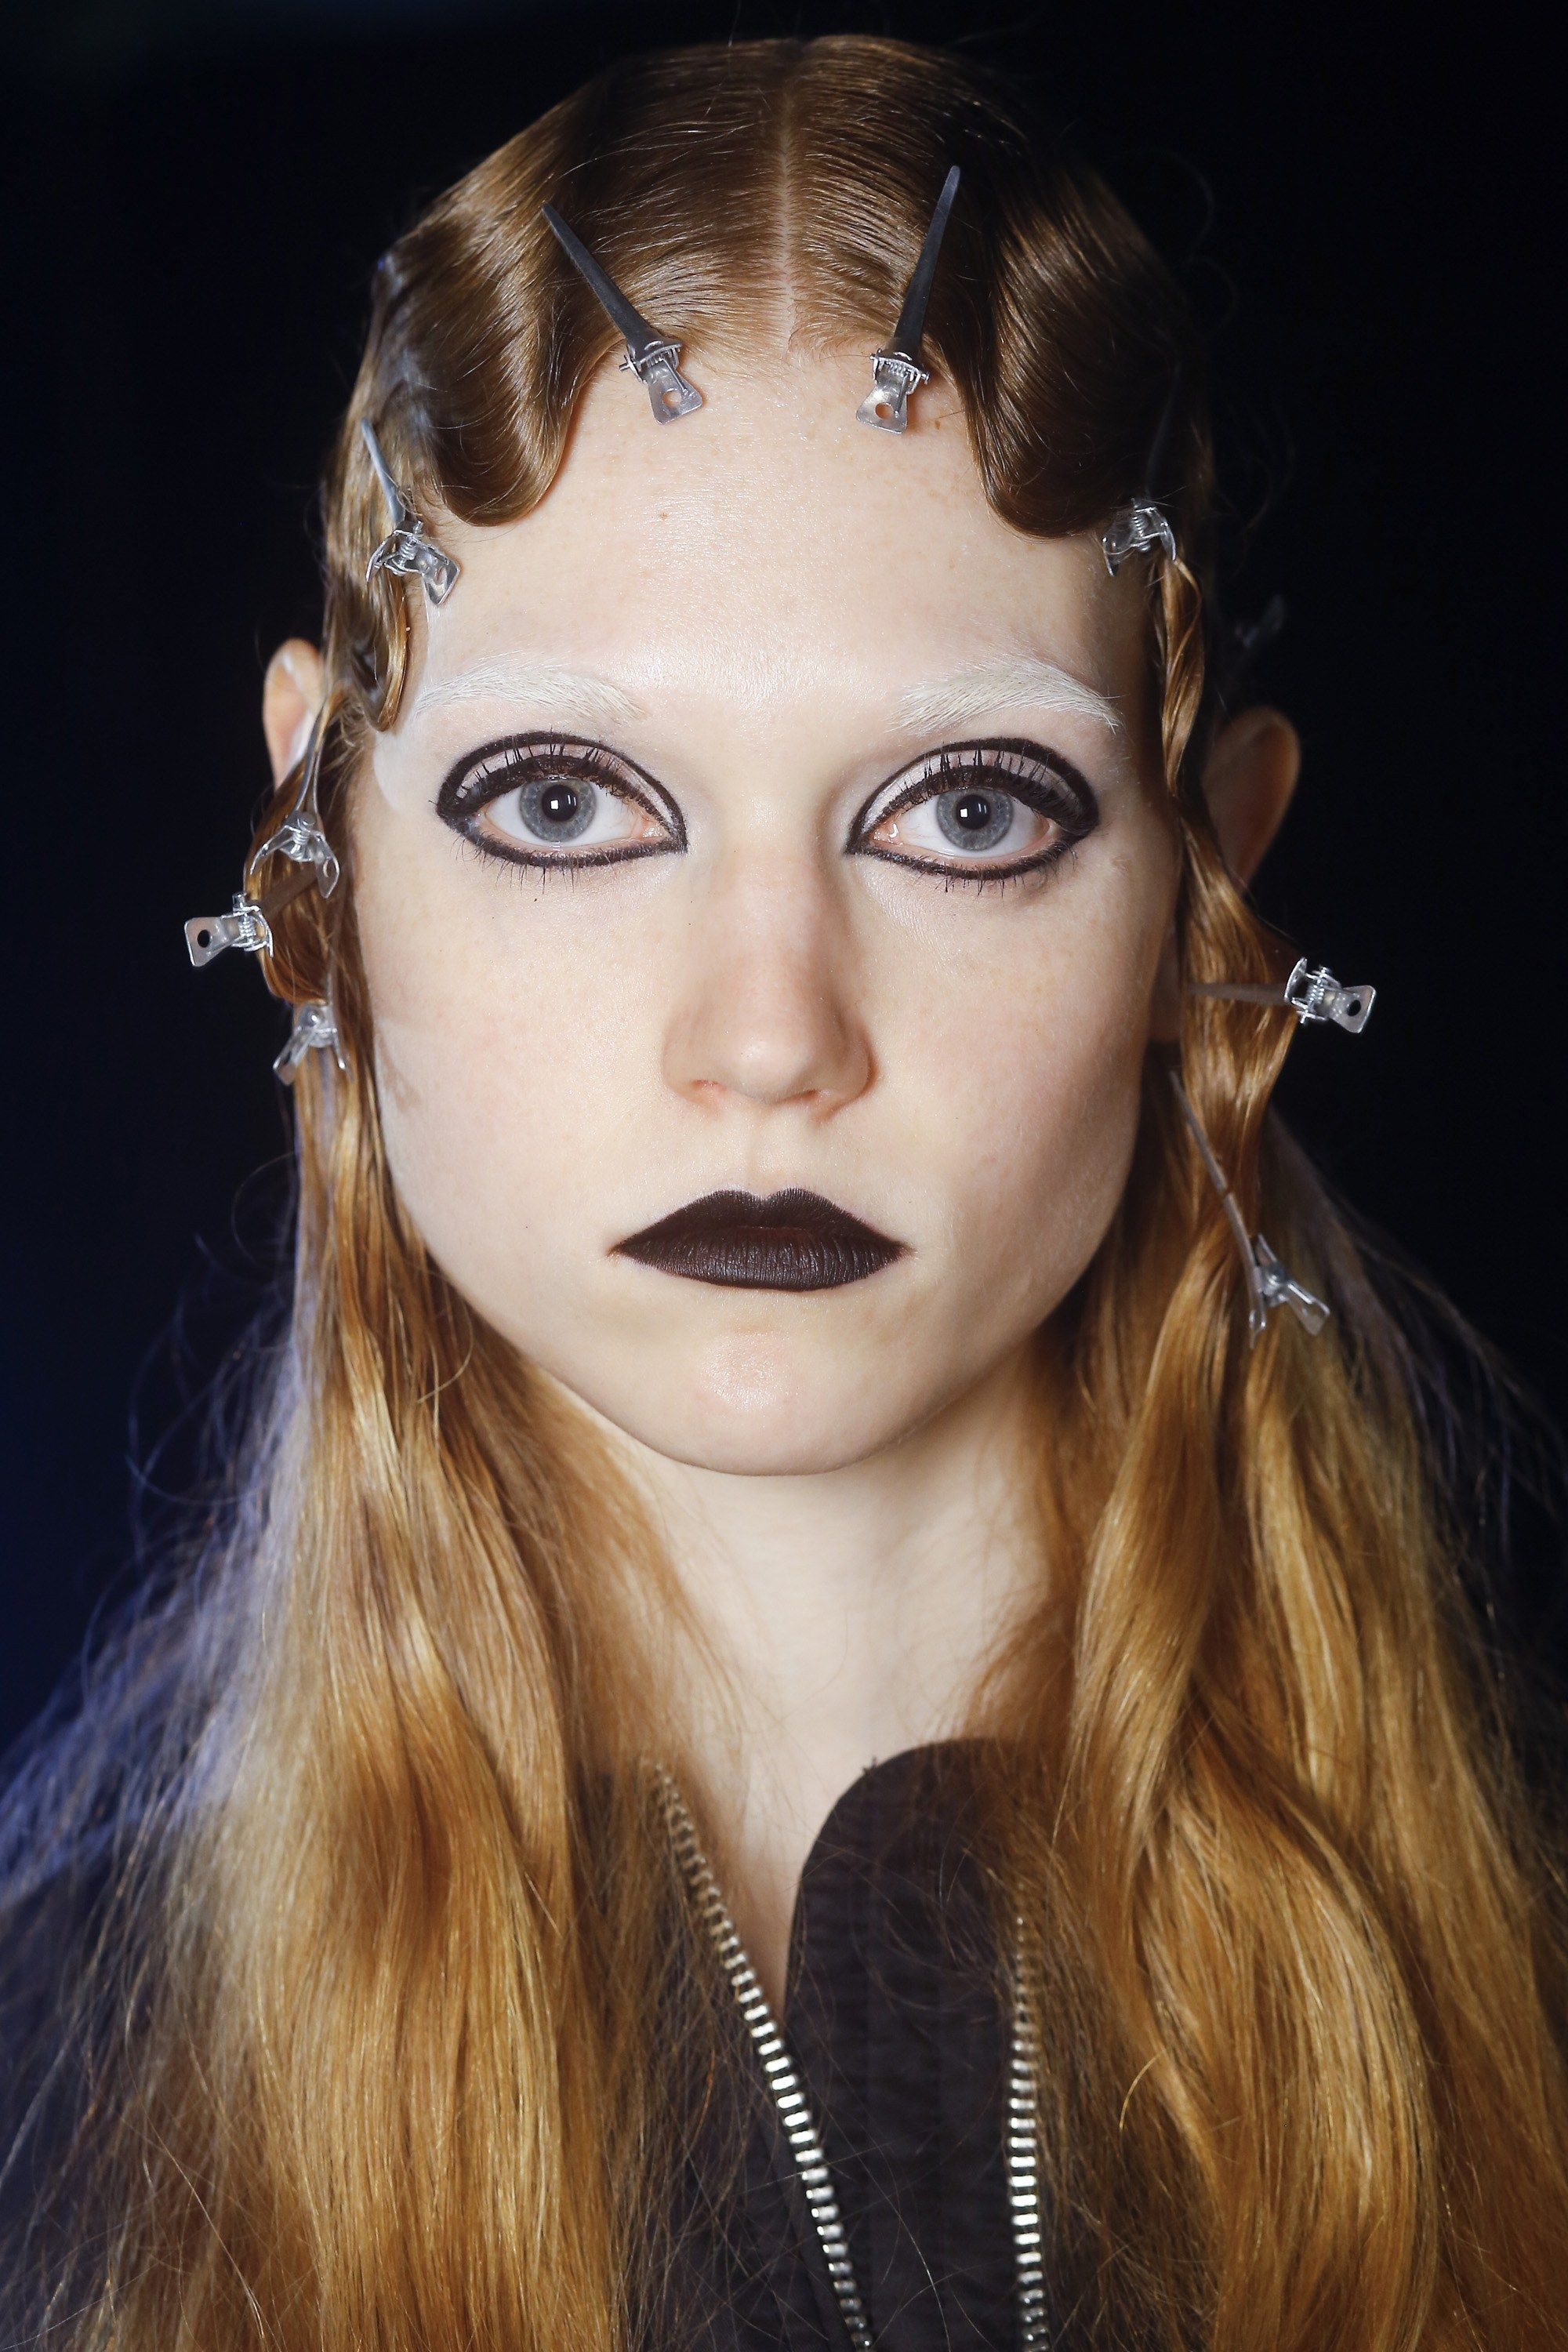 makeup hair jacobs marc beauty vogue fall ready runway wear editorial 毒品 hairstyles